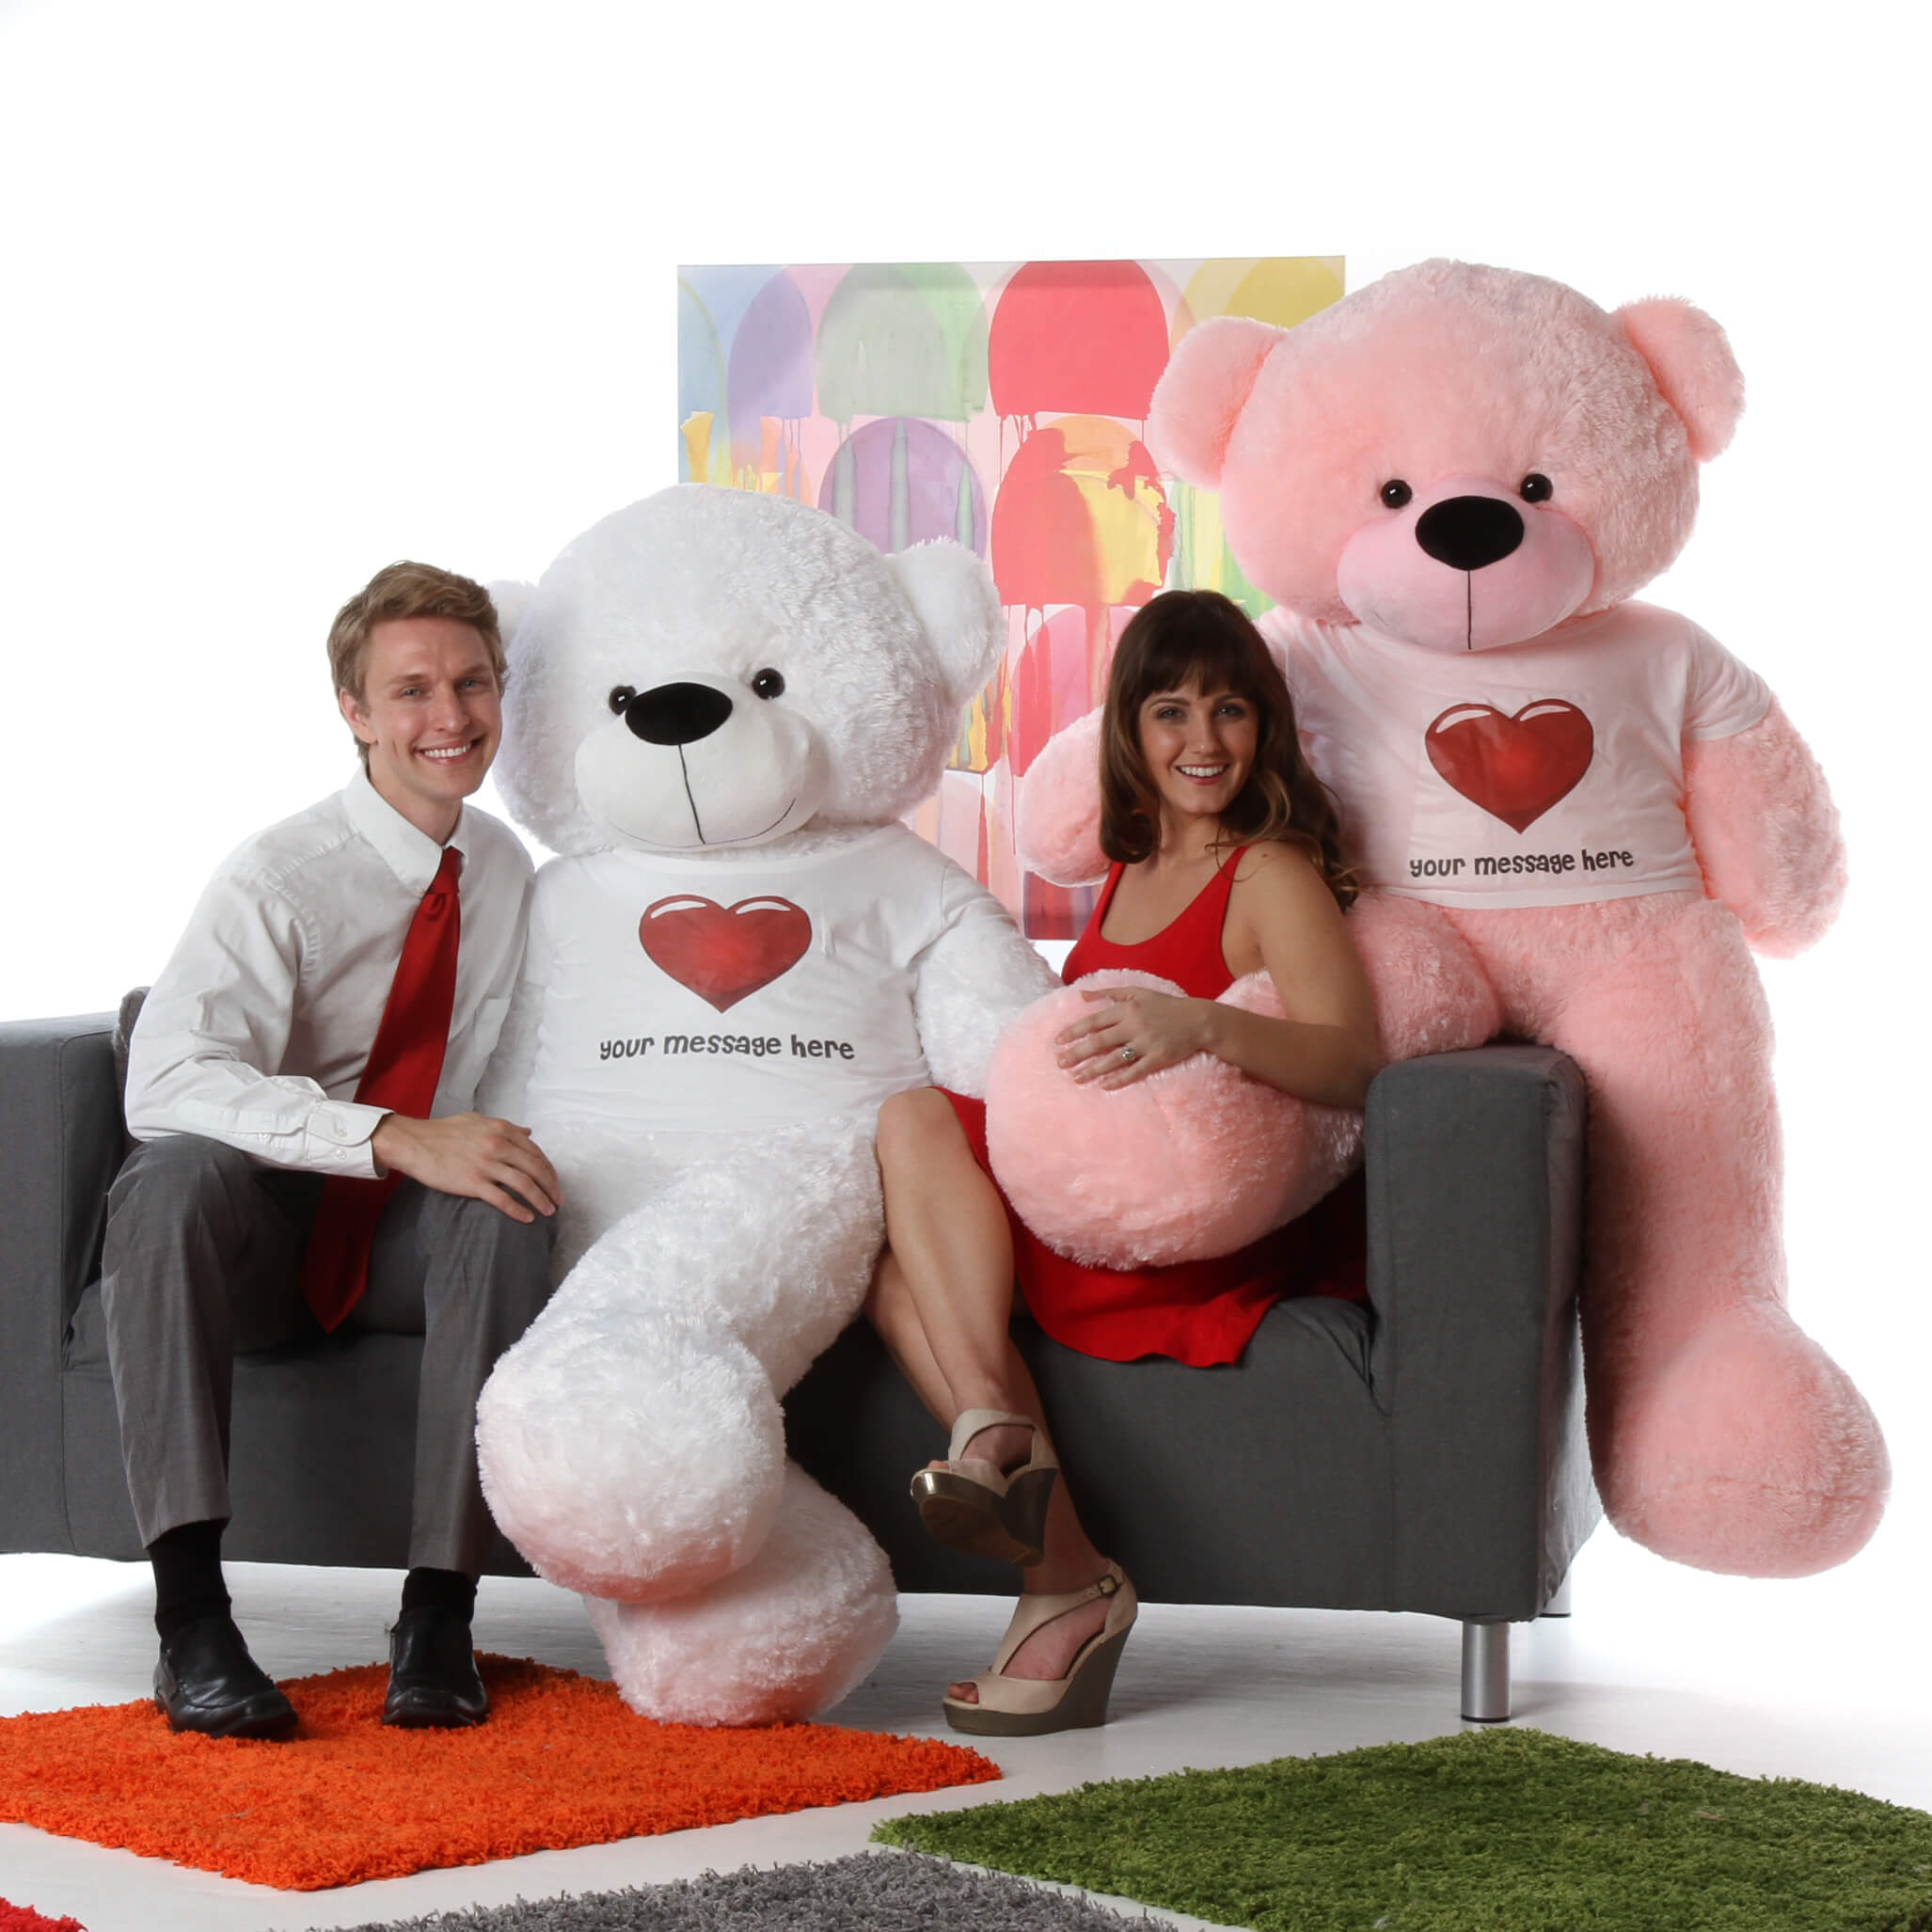 5ft-life-size-huge-personalized-pink-teddy-bear-famous-lady-cuddles-from-giant-teddy-brand-1.jpg